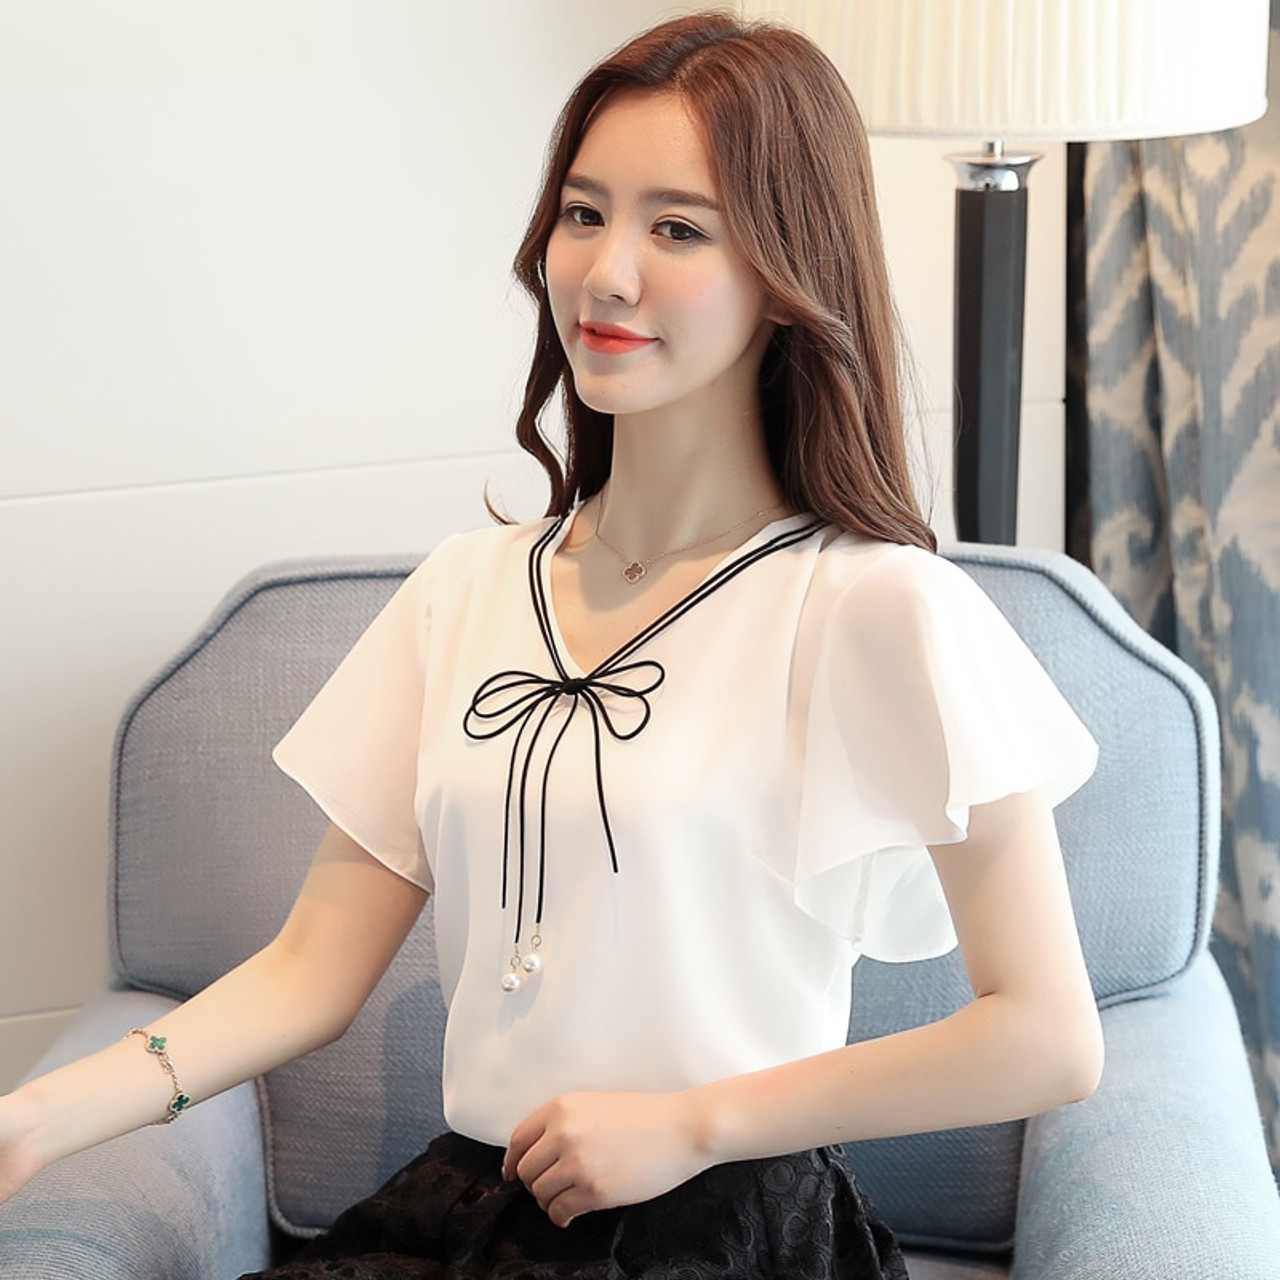 2c2bb3b030259 Dingaozlz M-4XL 2019 New Fashion Plus size Women Tops Elegant Chiffon Shirt  Casual clothing Bow tie Short sleeve Summer blouse